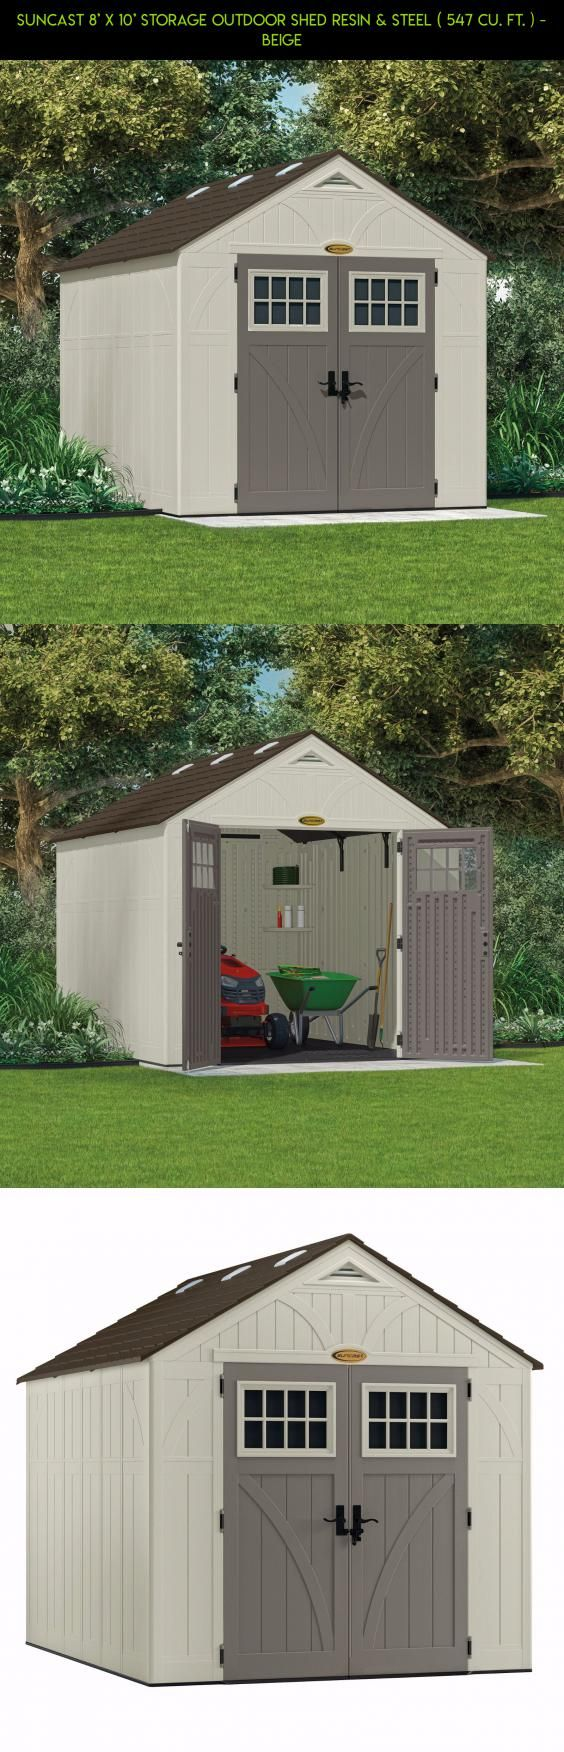 Suncast 8' x 10' Storage Outdoor Shed Resin & Steel ( 547 cu. ft. ) - Beige #storage #gadgets #parts #& #drone #kit #racing #products #shopping #sheds #outdoor #tech #plans #8x10 #technology #fpv #camera